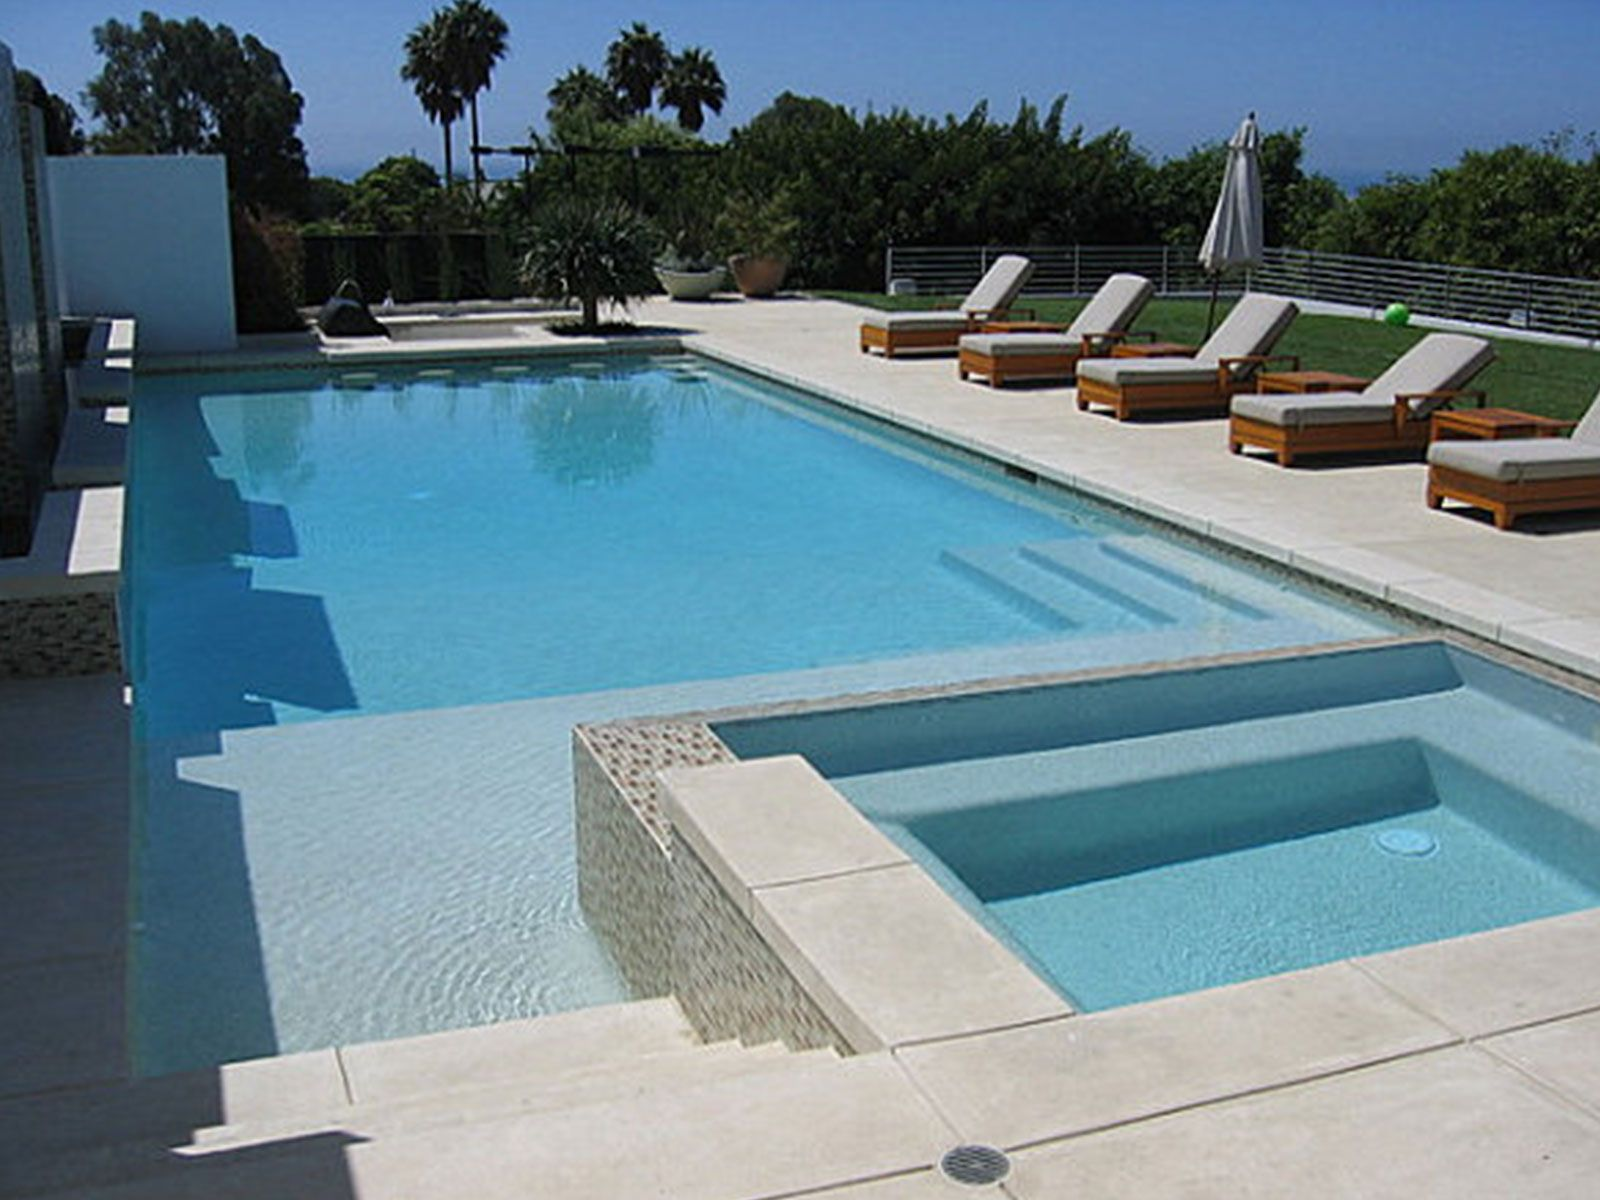 2013 Swimming Pool Design Image 2013 Swimming Pool Design Ideas Amazing Home Design